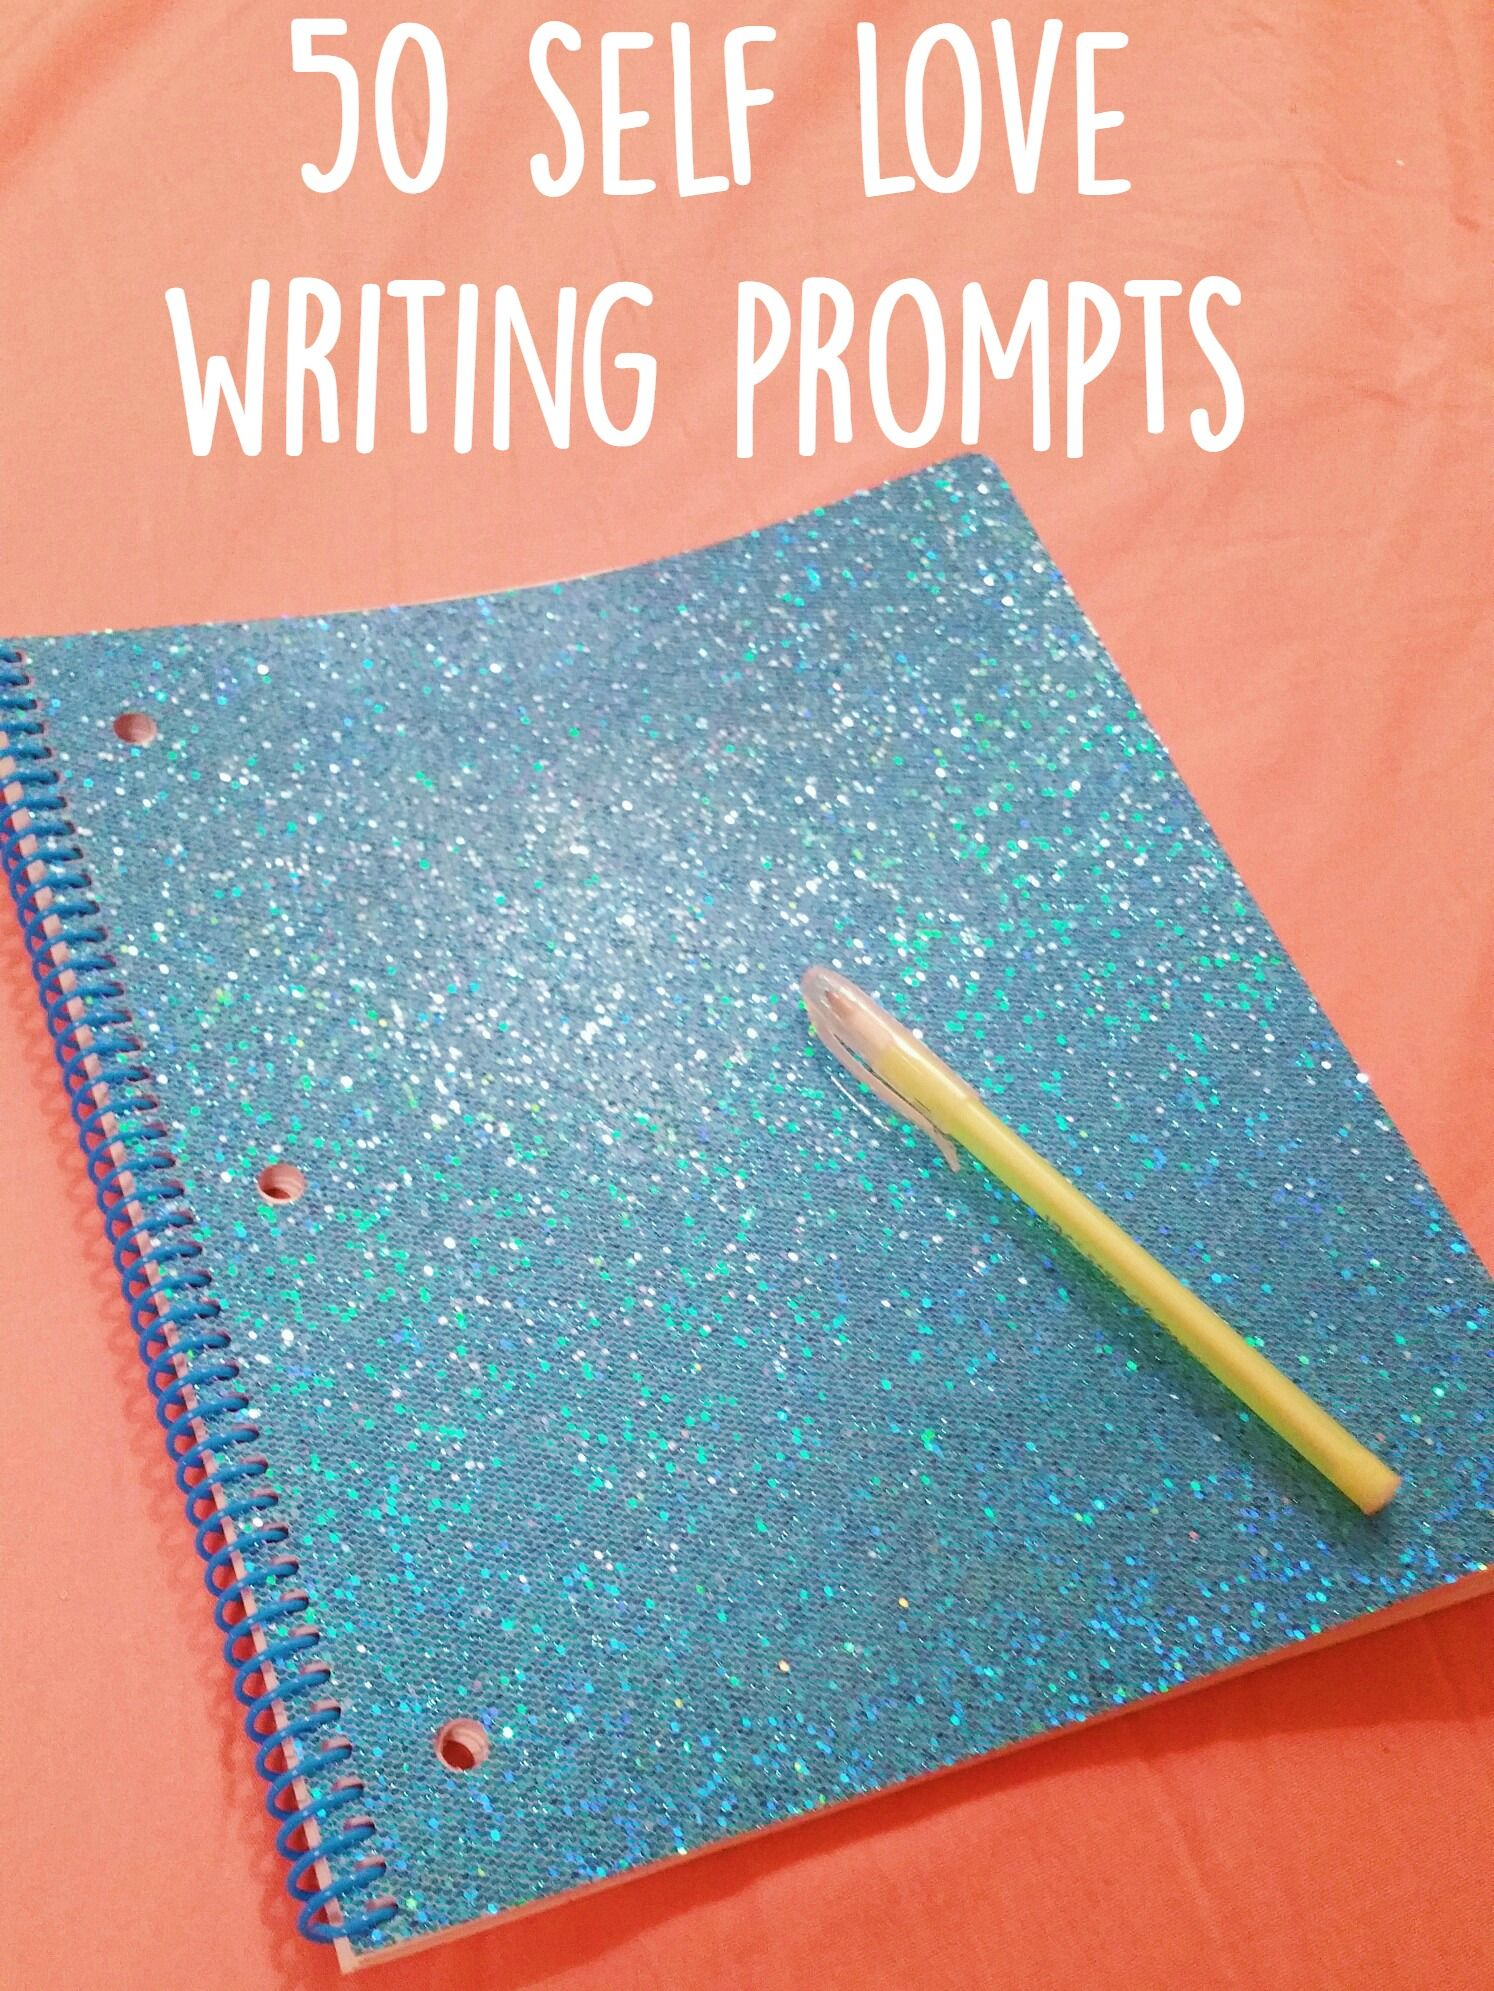 50 Self Love Writing Prompts